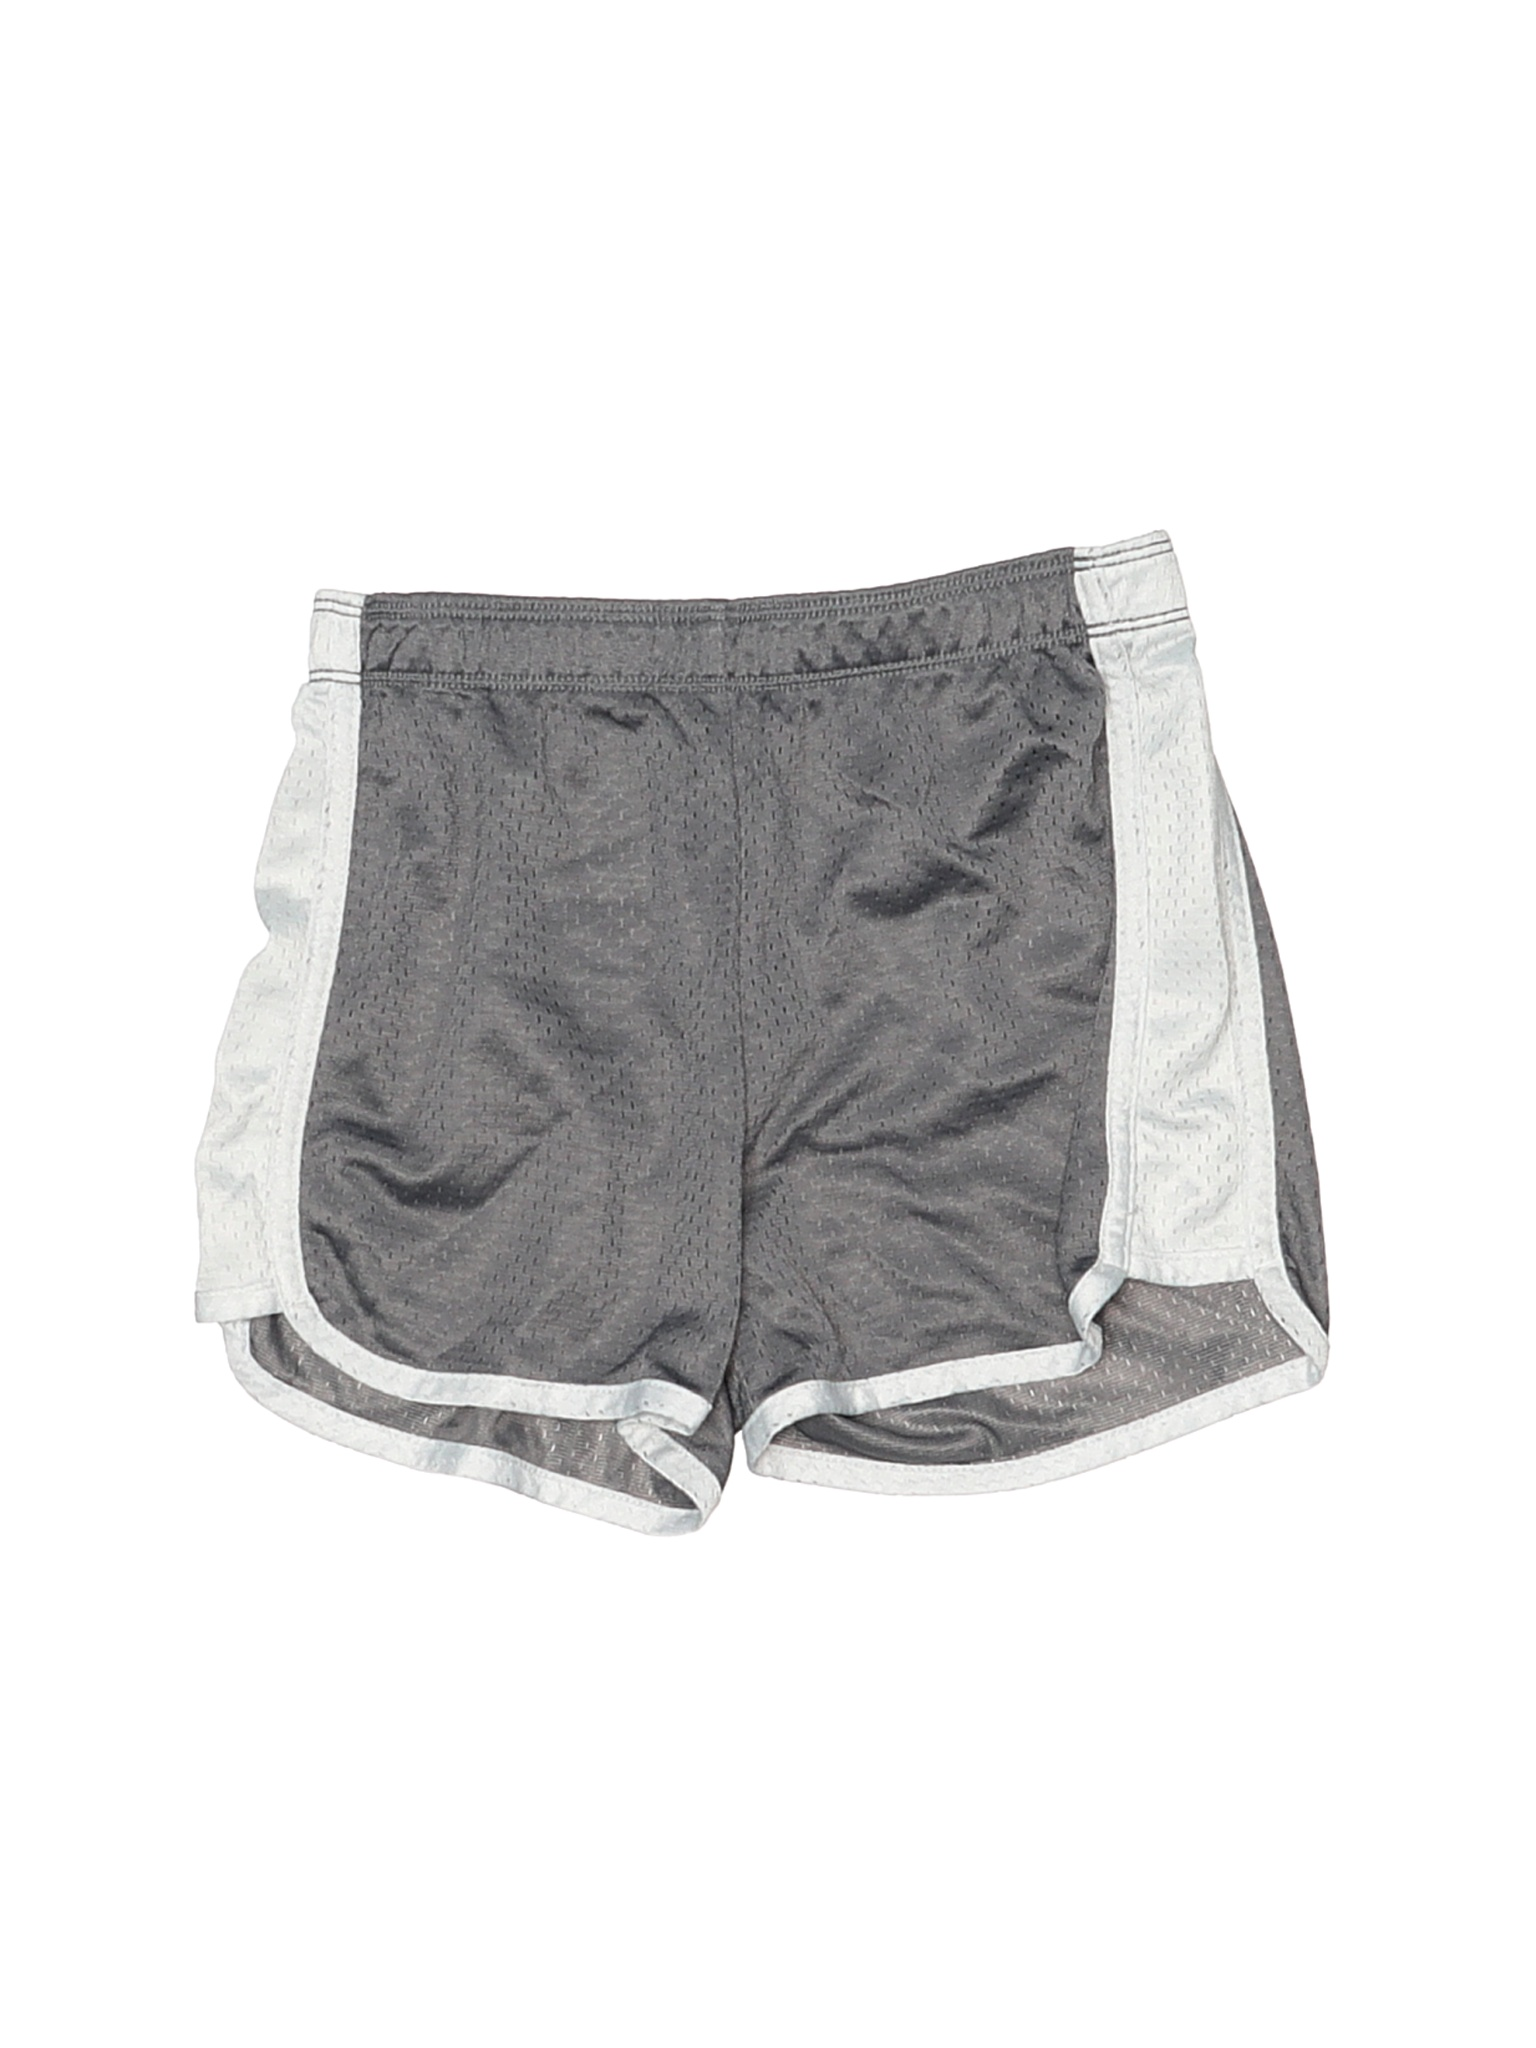 NEW Justice Active for Girls charcoal or Black High Waist Pedal Sz 7 10 8